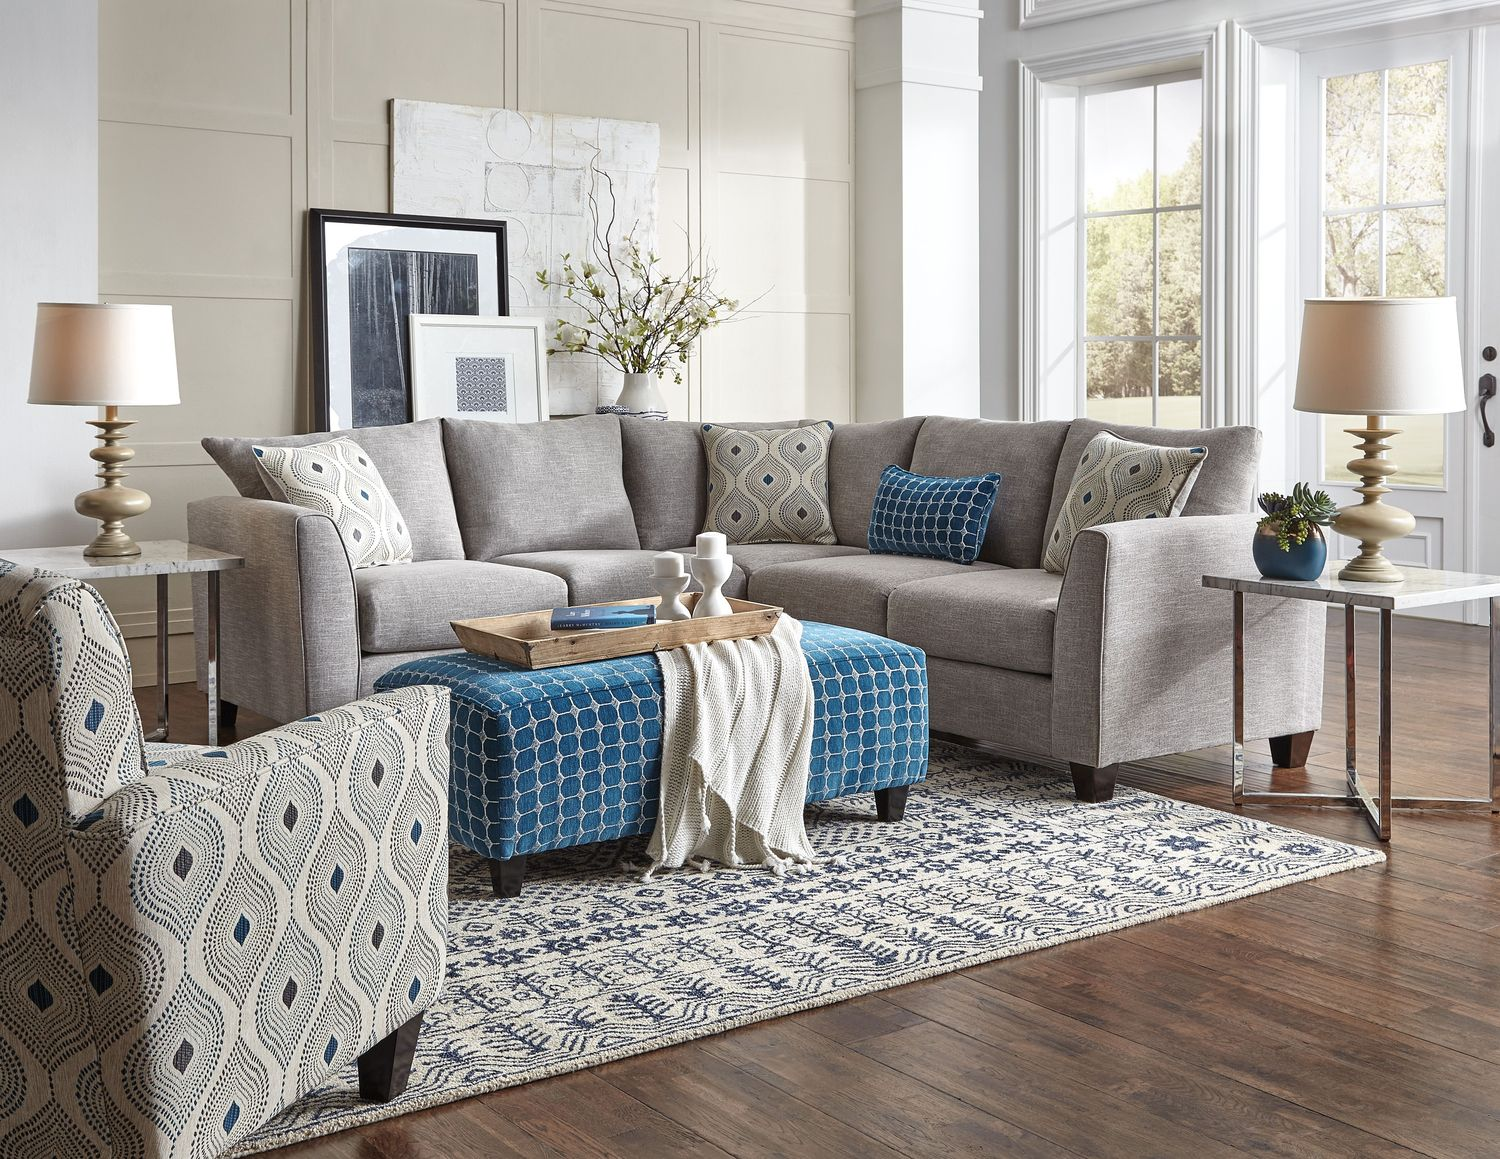 Living Room Furniture - Roswell 2-Piece Sectional Sofa - Quartz